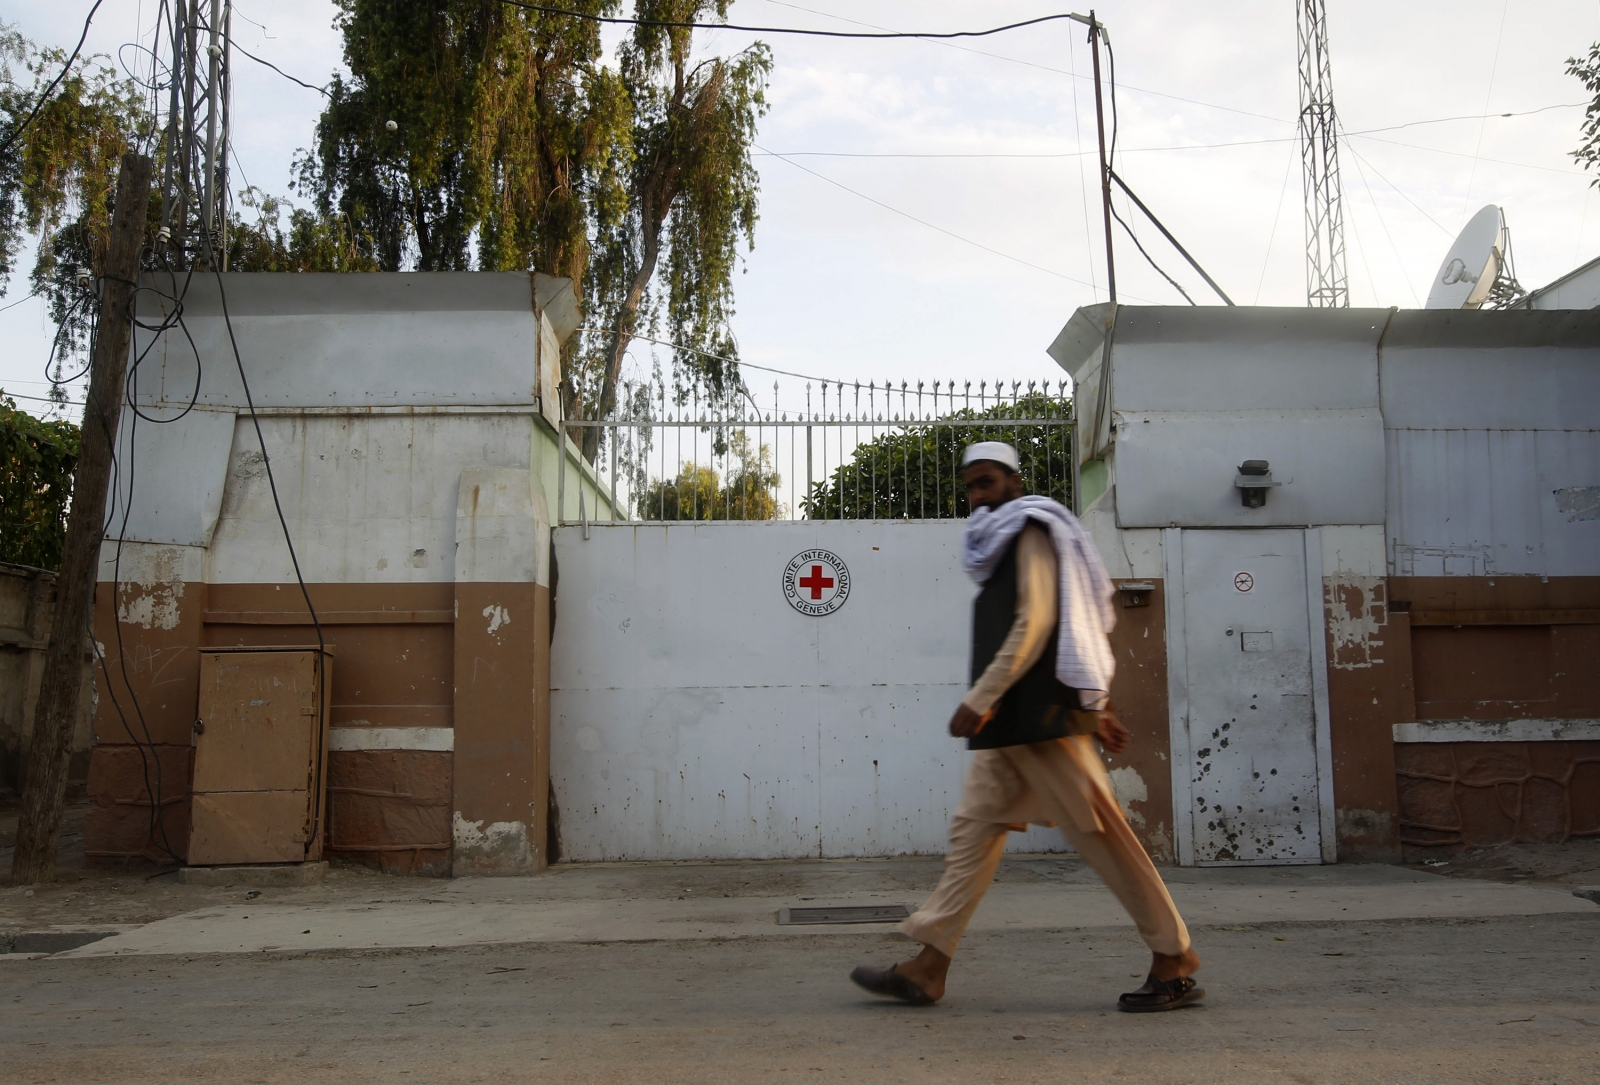 International Committee of the Red Cross (ICRC) office in Jalalabad